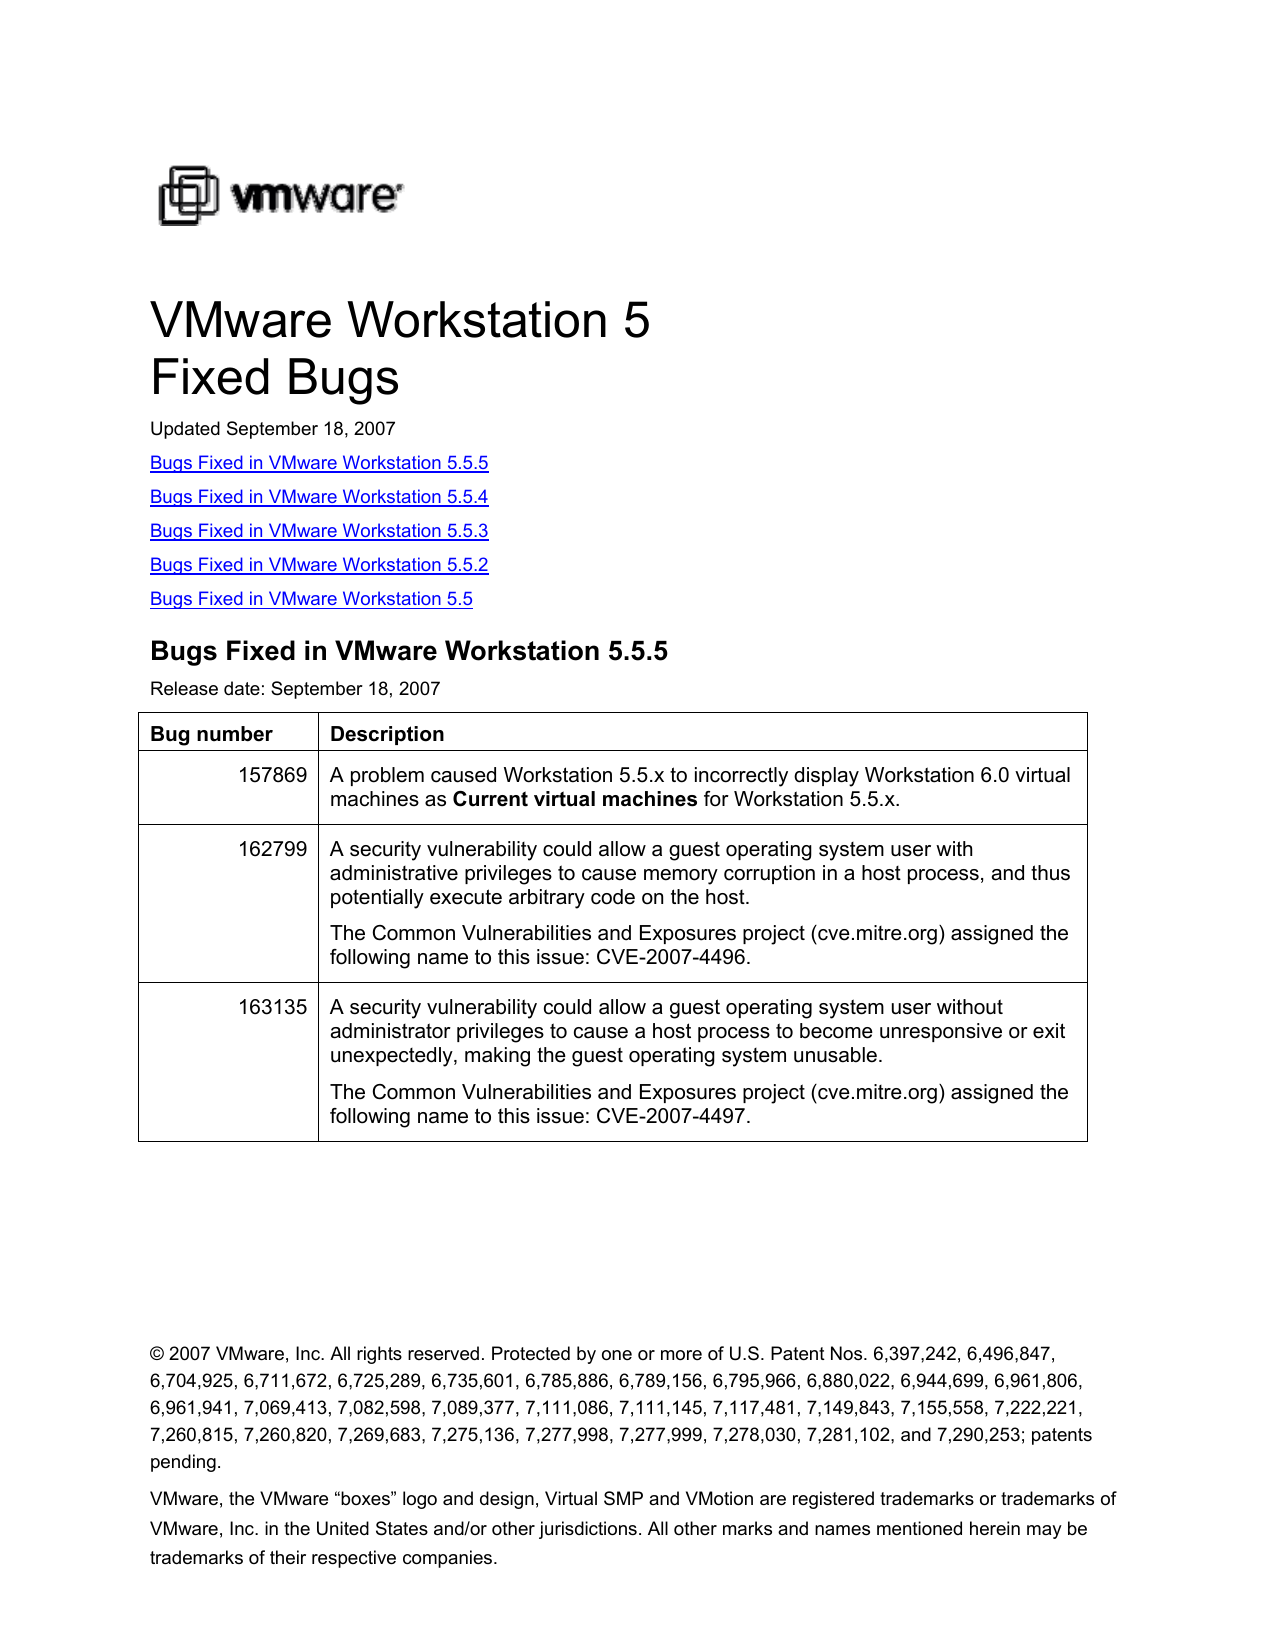 VMware Workstation 5 – Fixed Bugs